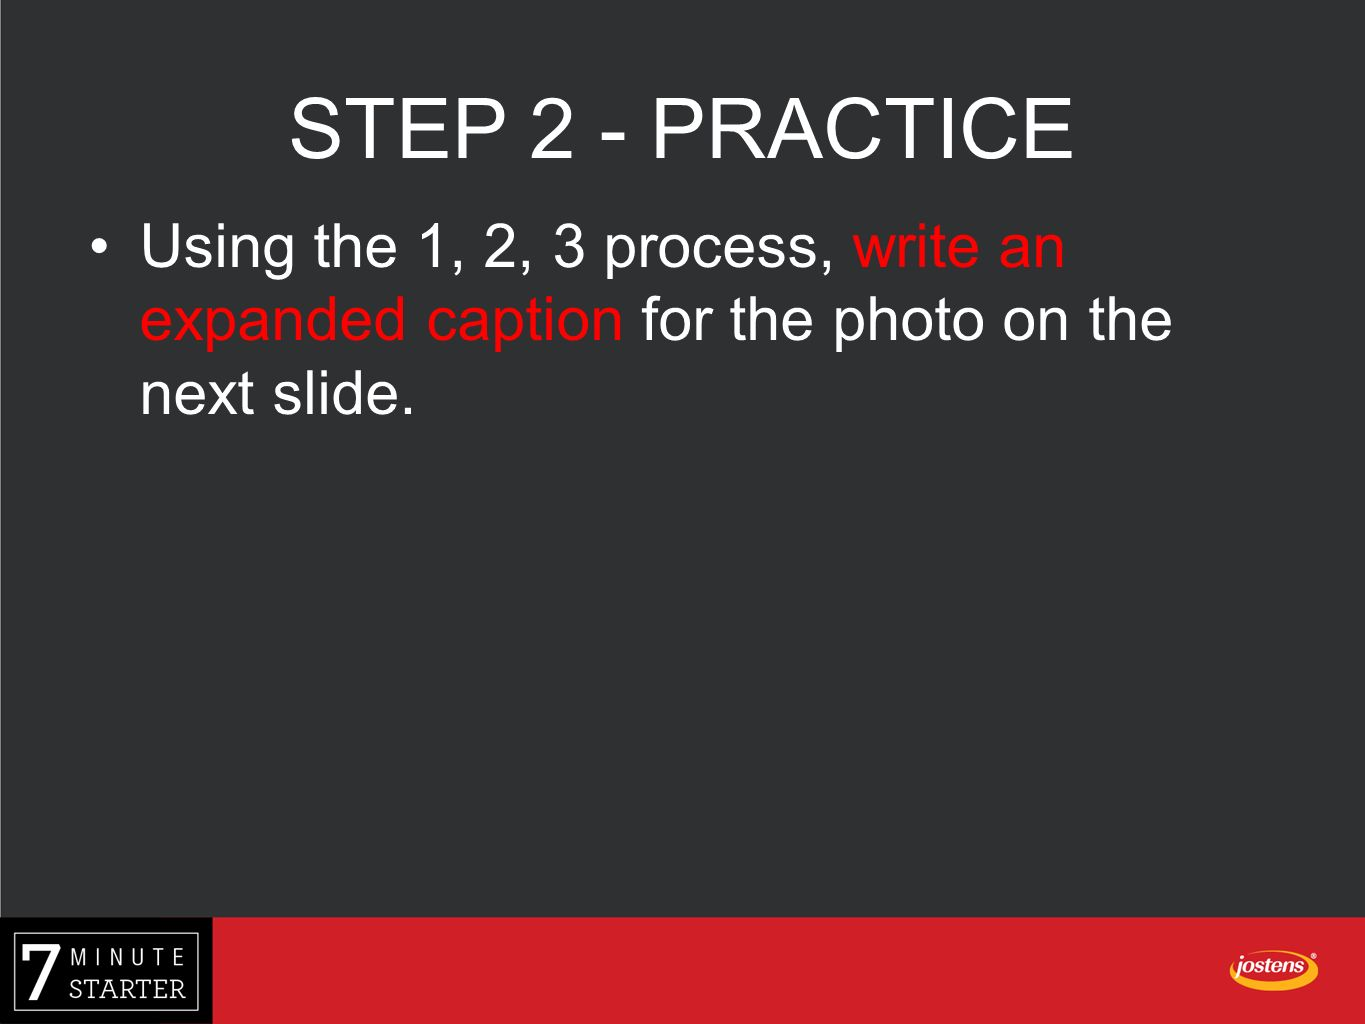 STEP 2 - PRACTICE Using the 1, 2, 3 process, write an expanded caption for the photo on the next slide.